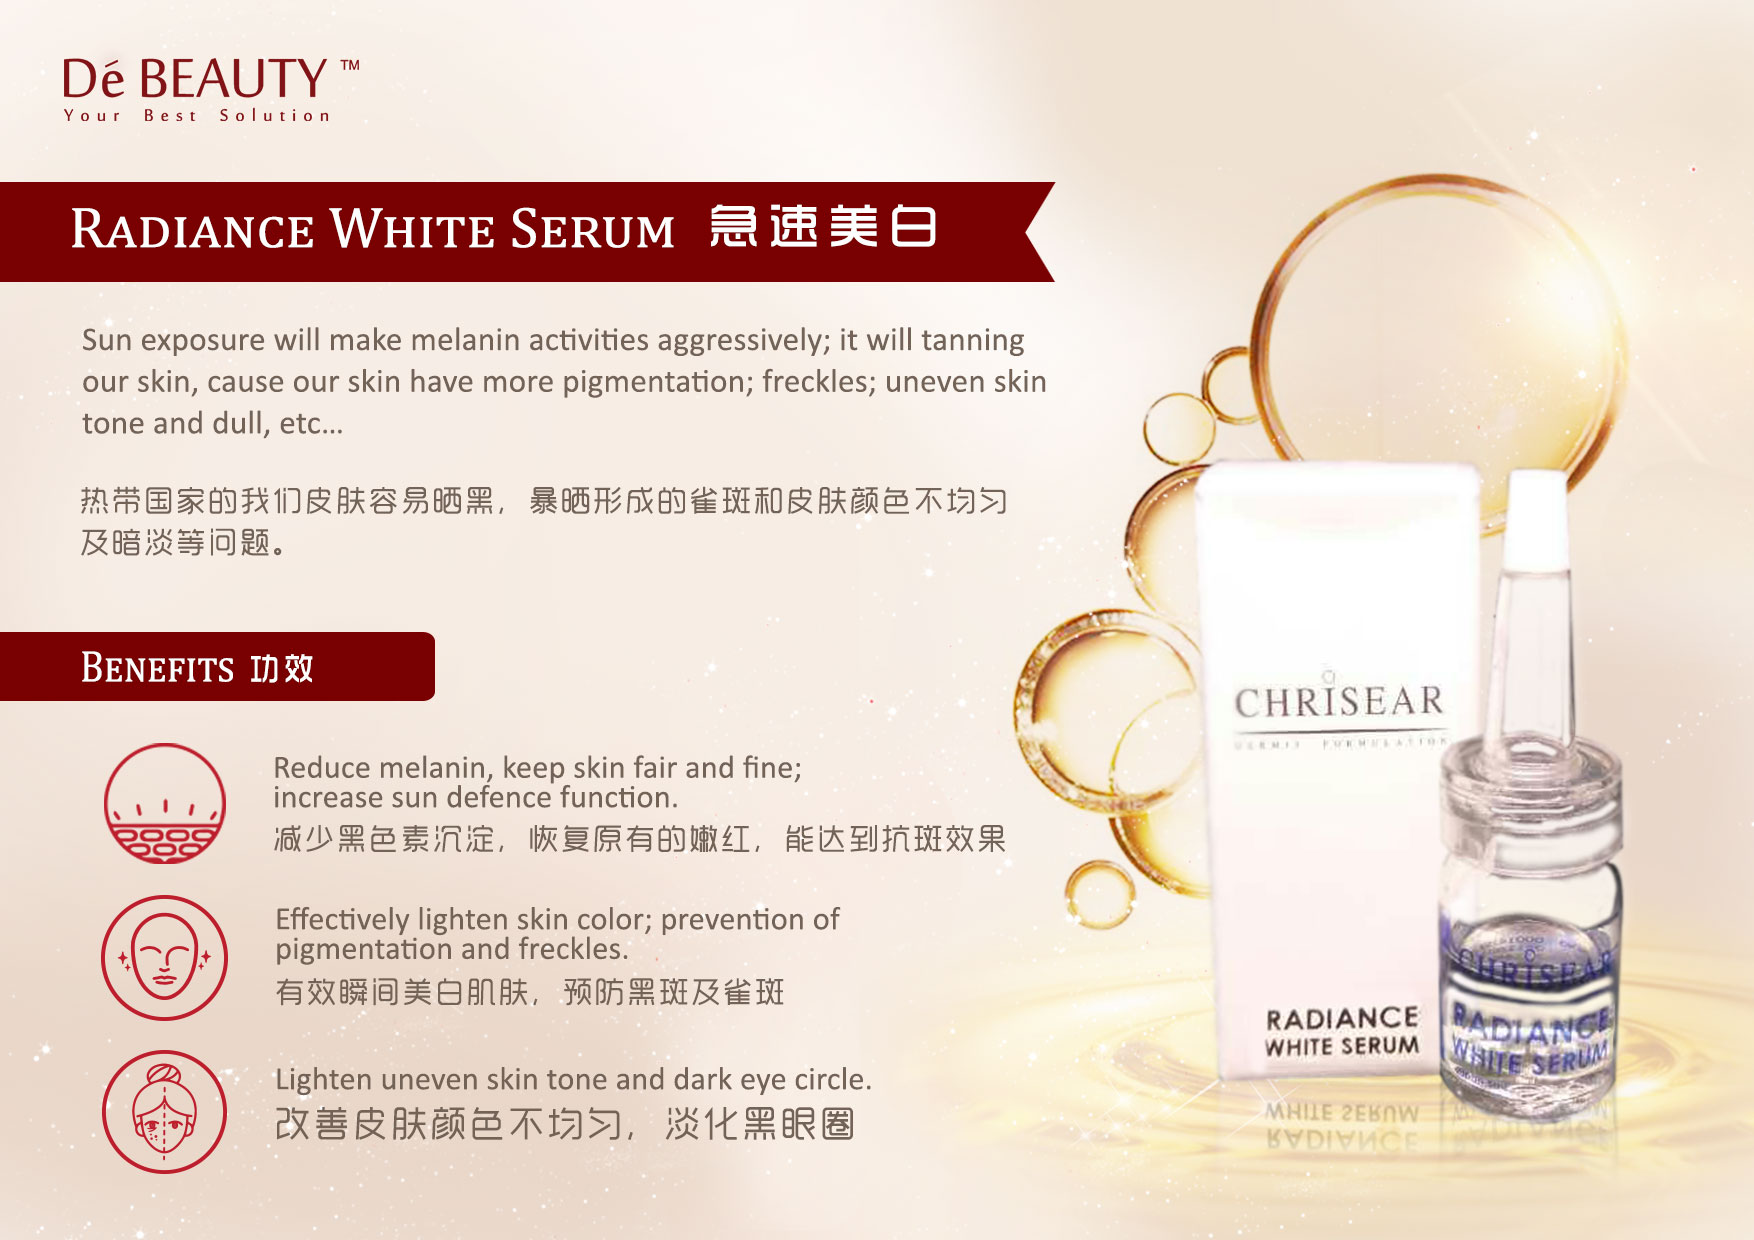 De Beauty Chrisear Radiance White Serum